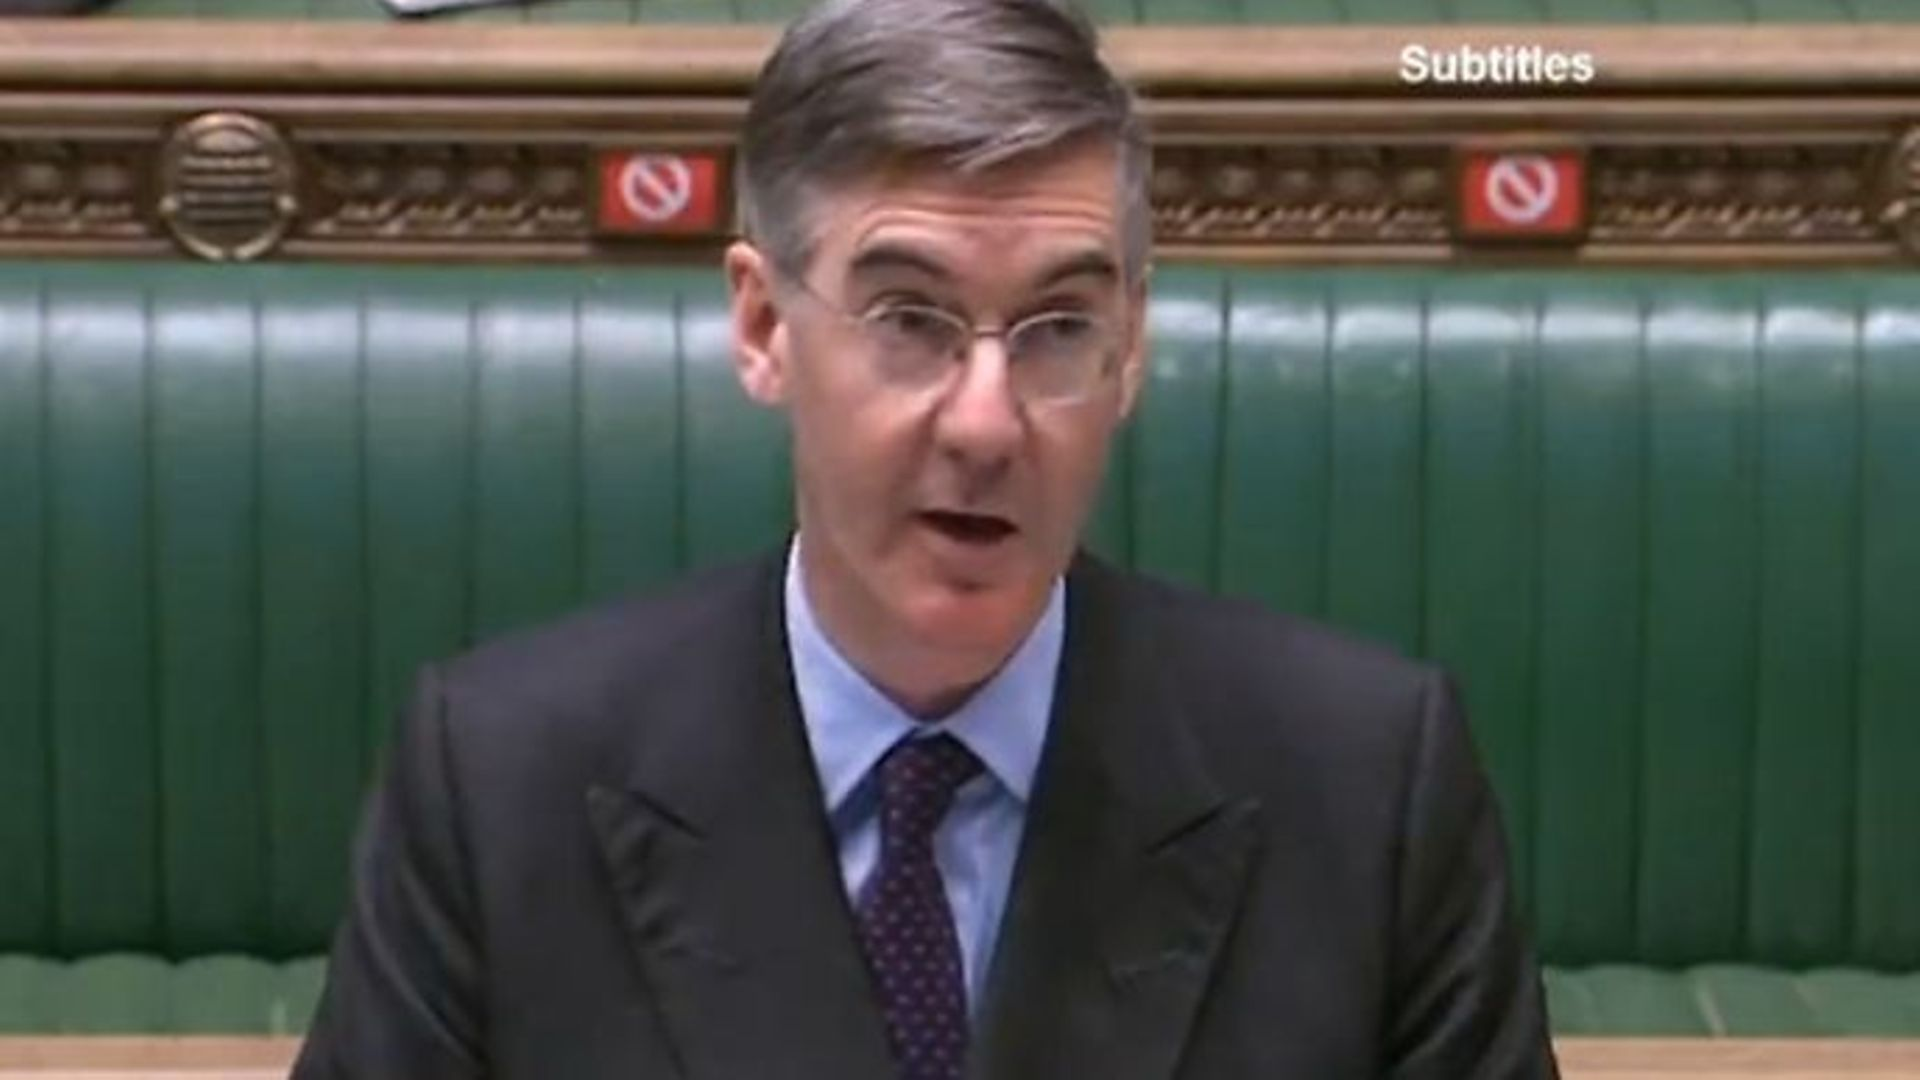 Jacob Rees-Mogg in the House of Commons - Credit: Twitter